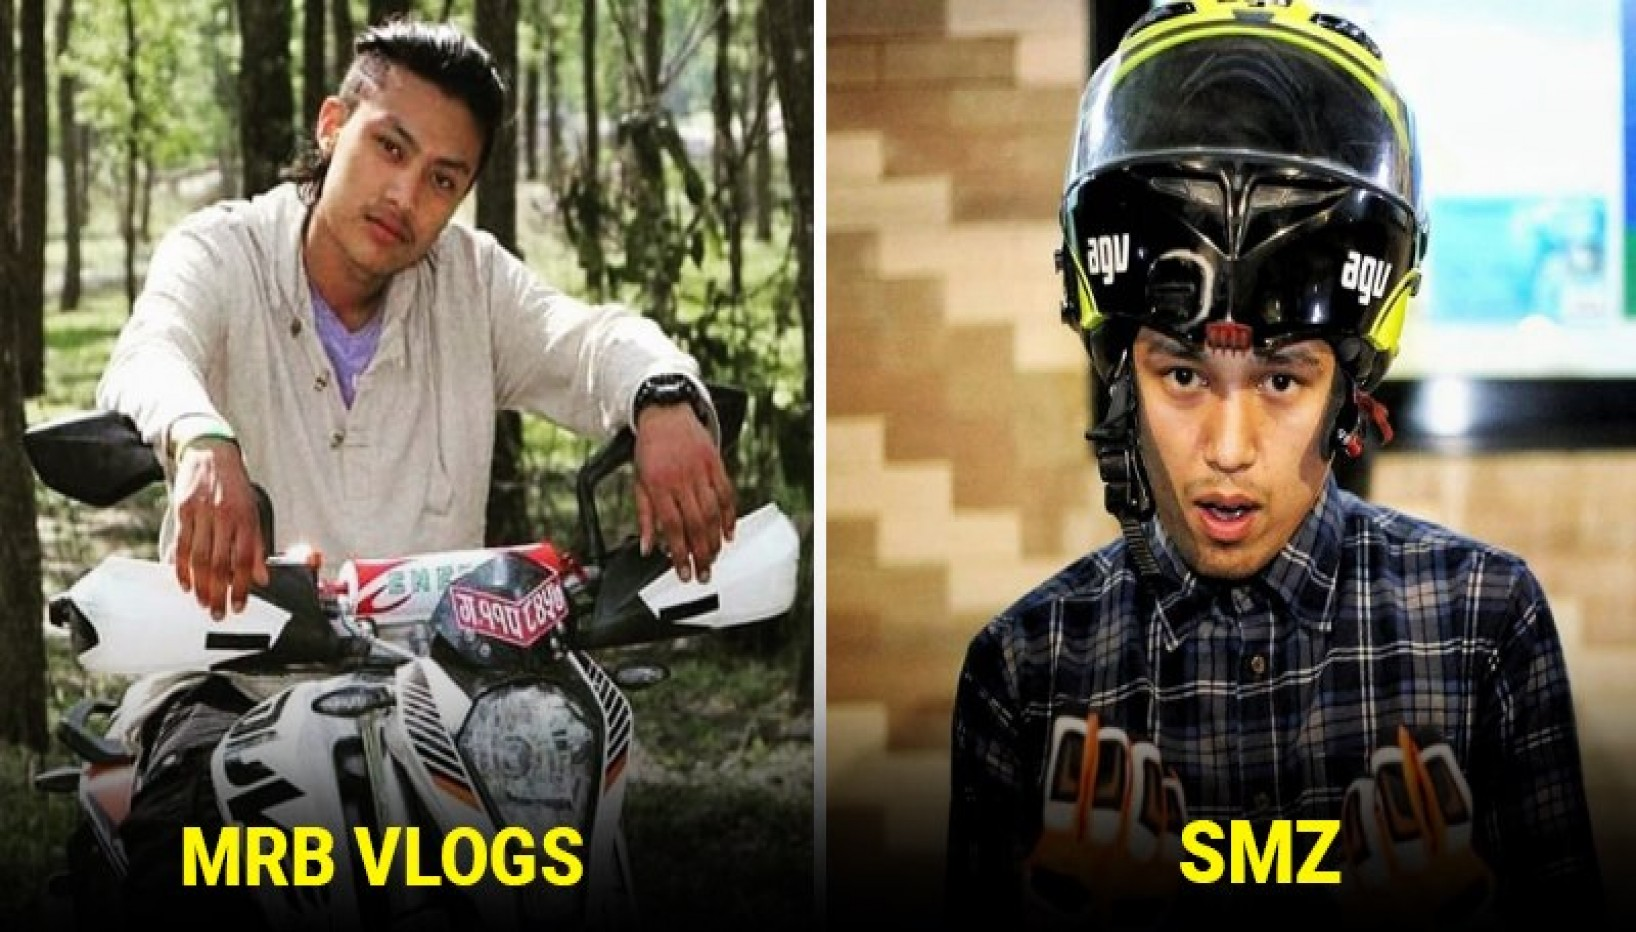 10 Top Nepali Motovloggers To Get Your Daily Dose Of Two-wheeler Content